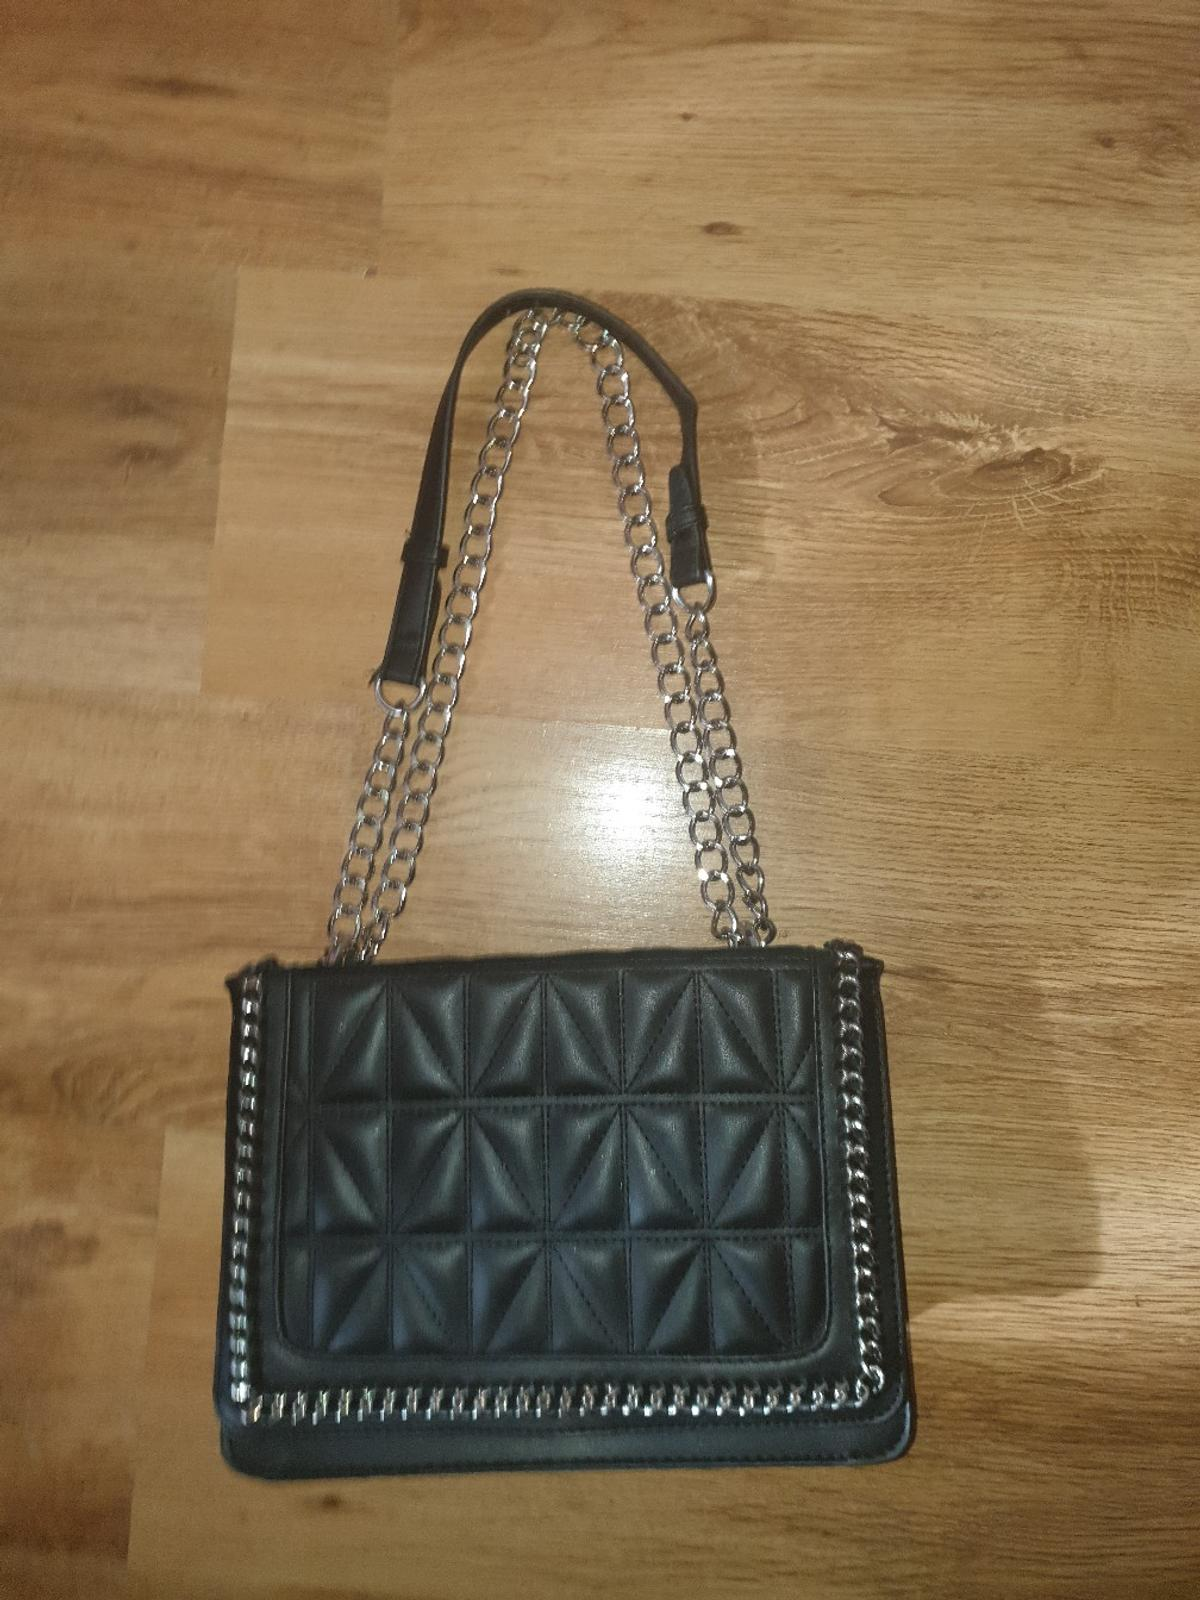 great condition can be used as either a cross body bag or under arm